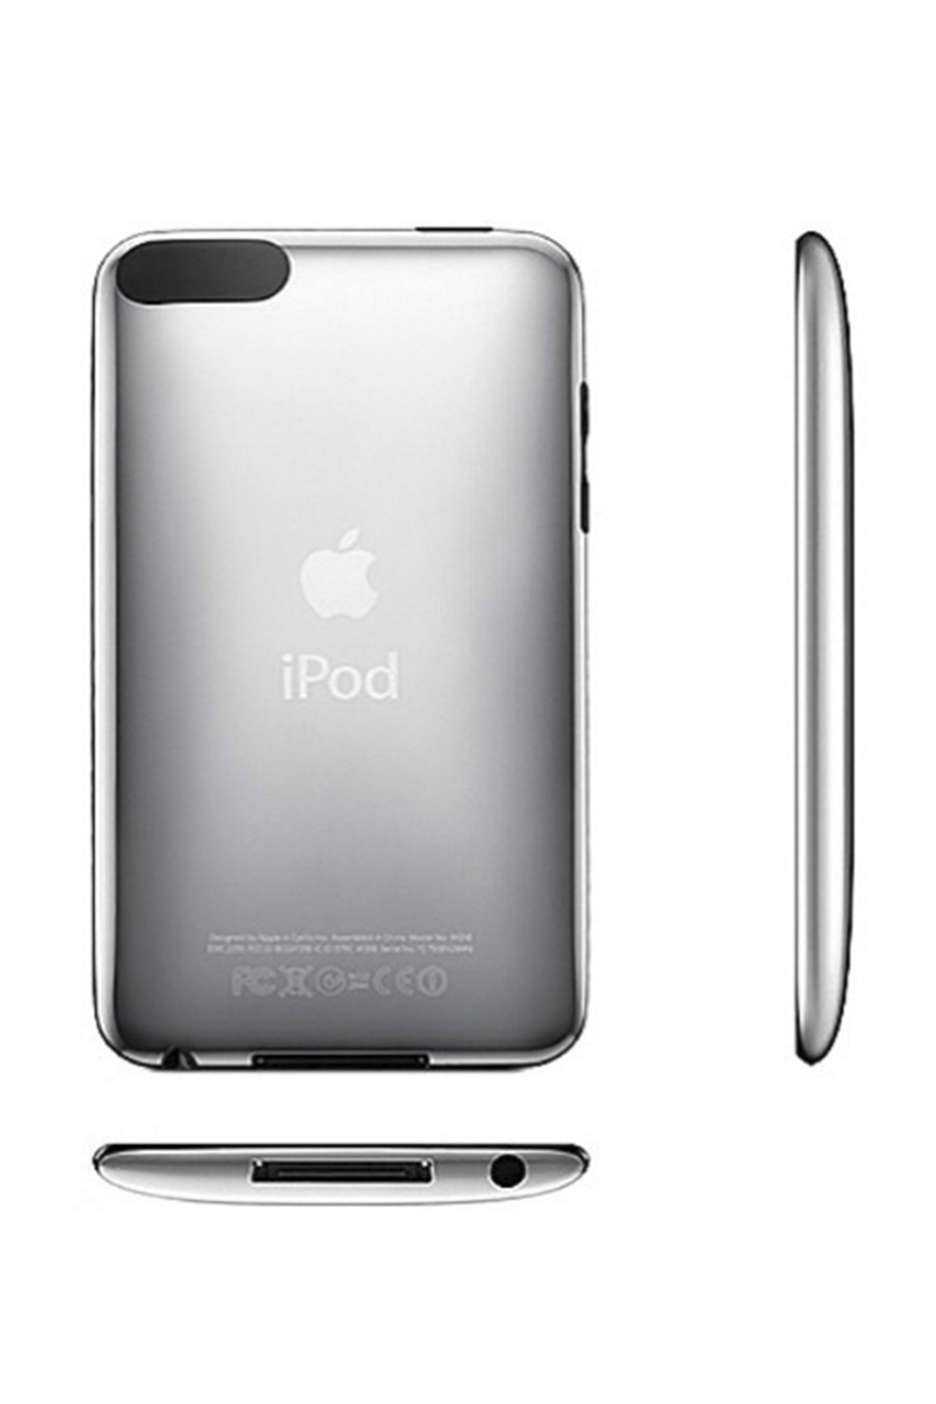 Apple iPod Touch MC008LL A 32GB 3rd Generation Black ...